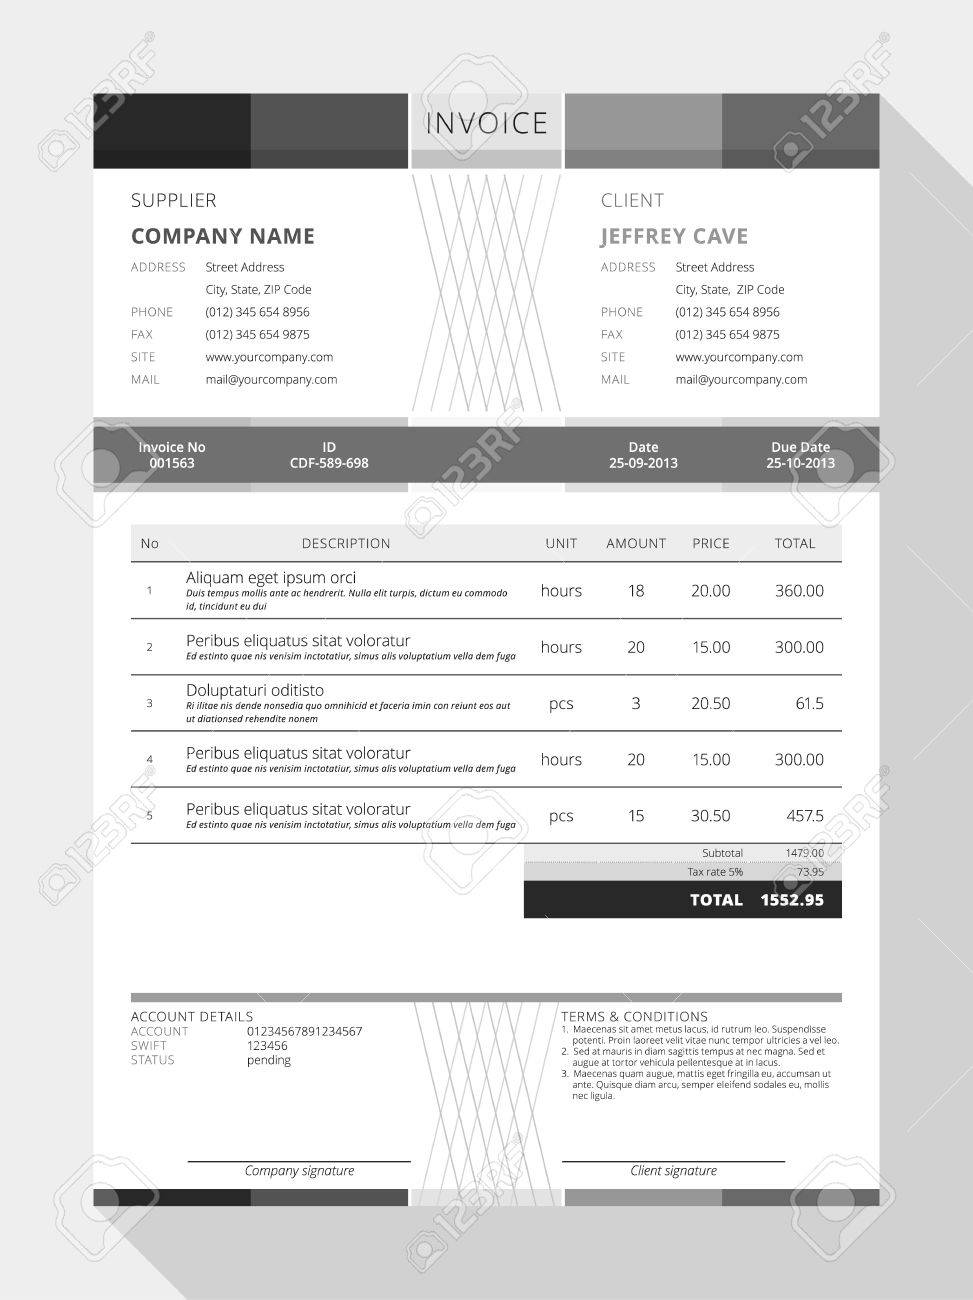 Darkfaderus  Marvellous Design An Invoice  Professional Graphic Design Invoice  With Lovable Vector Customizable Invoice Form Template Design Vector   Design An Invoice With Adorable Free Billing Invoice Template Also Is Paypal Invoice Safe In Addition Dhl Proforma Invoice And What Is A Sales Invoice As Well As Toyota Tacoma Invoice Price Additionally Mock Invoice From Happytomco With Darkfaderus  Lovable Design An Invoice  Professional Graphic Design Invoice  With Adorable Vector Customizable Invoice Form Template Design Vector   Design An Invoice And Marvellous Free Billing Invoice Template Also Is Paypal Invoice Safe In Addition Dhl Proforma Invoice From Happytomco